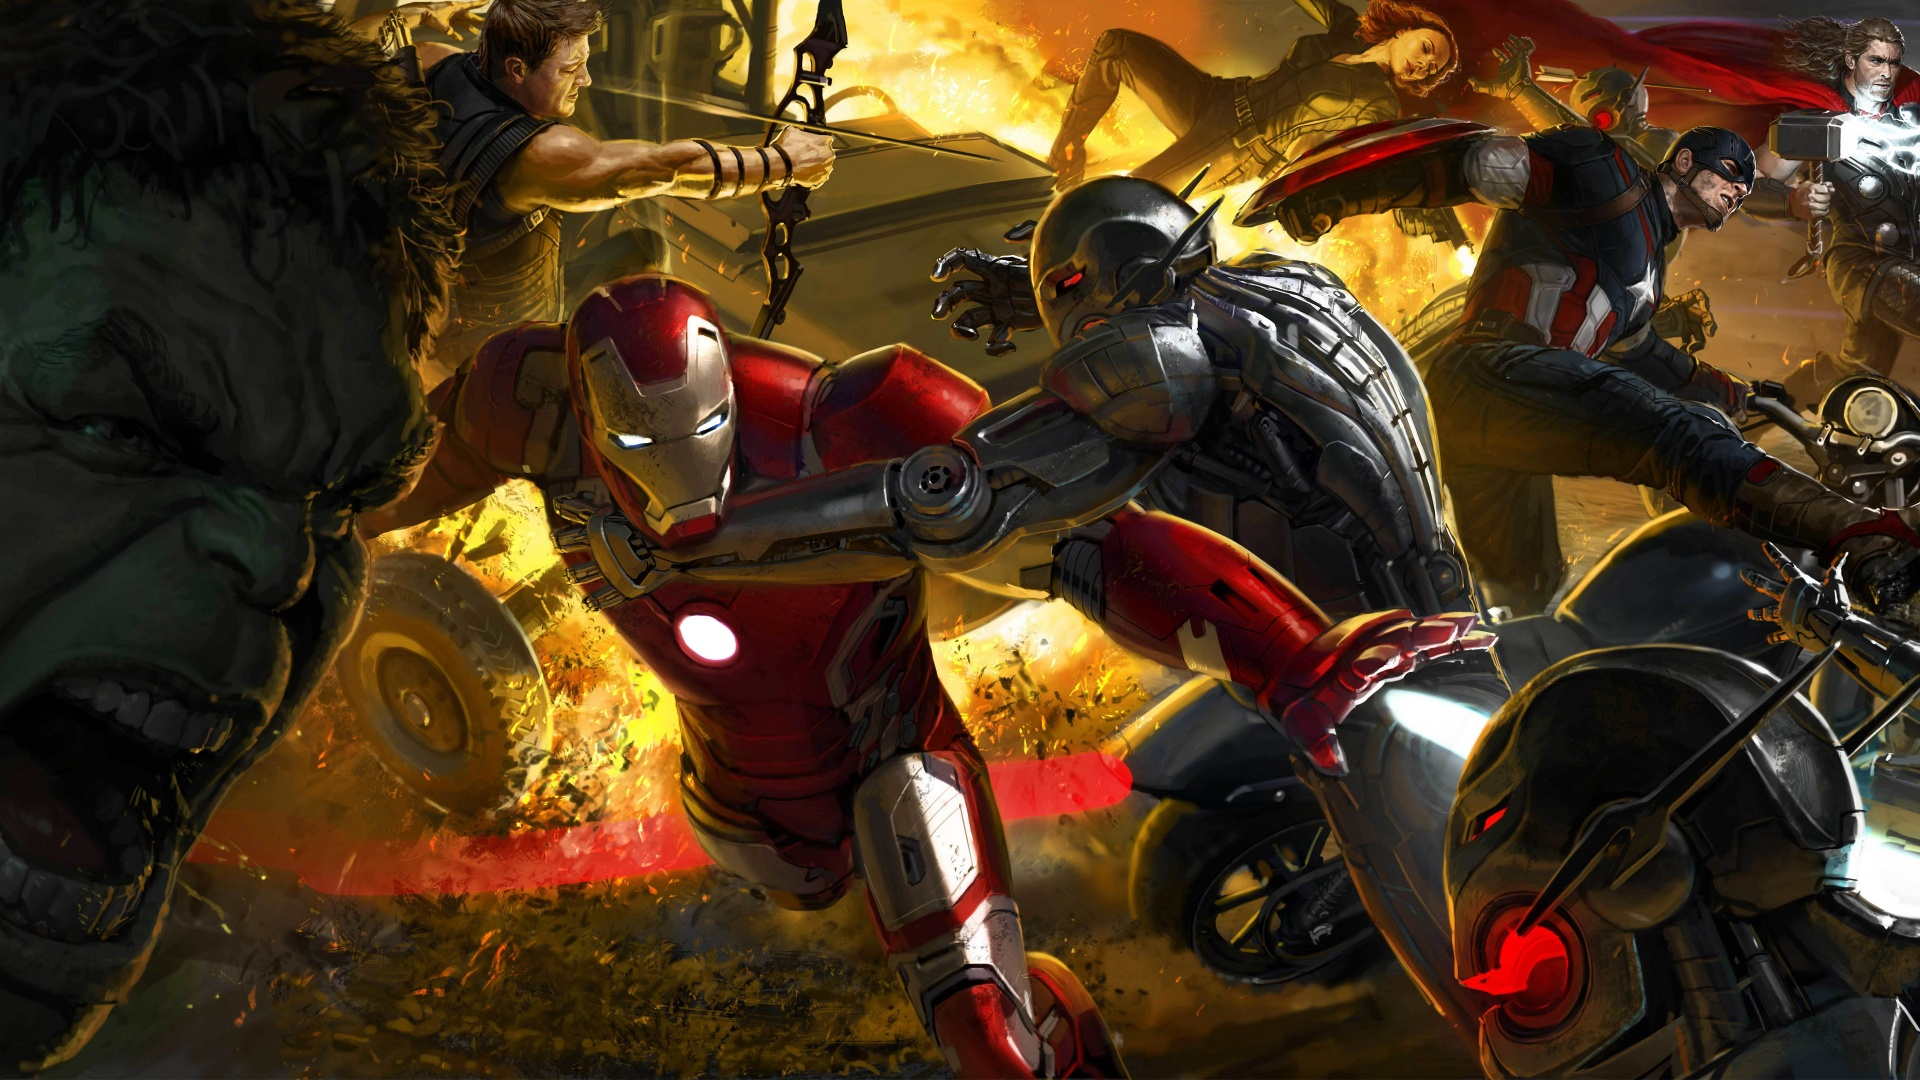 Download Avengers 3 Hindi Dubbed HD , High Quality avi Movie